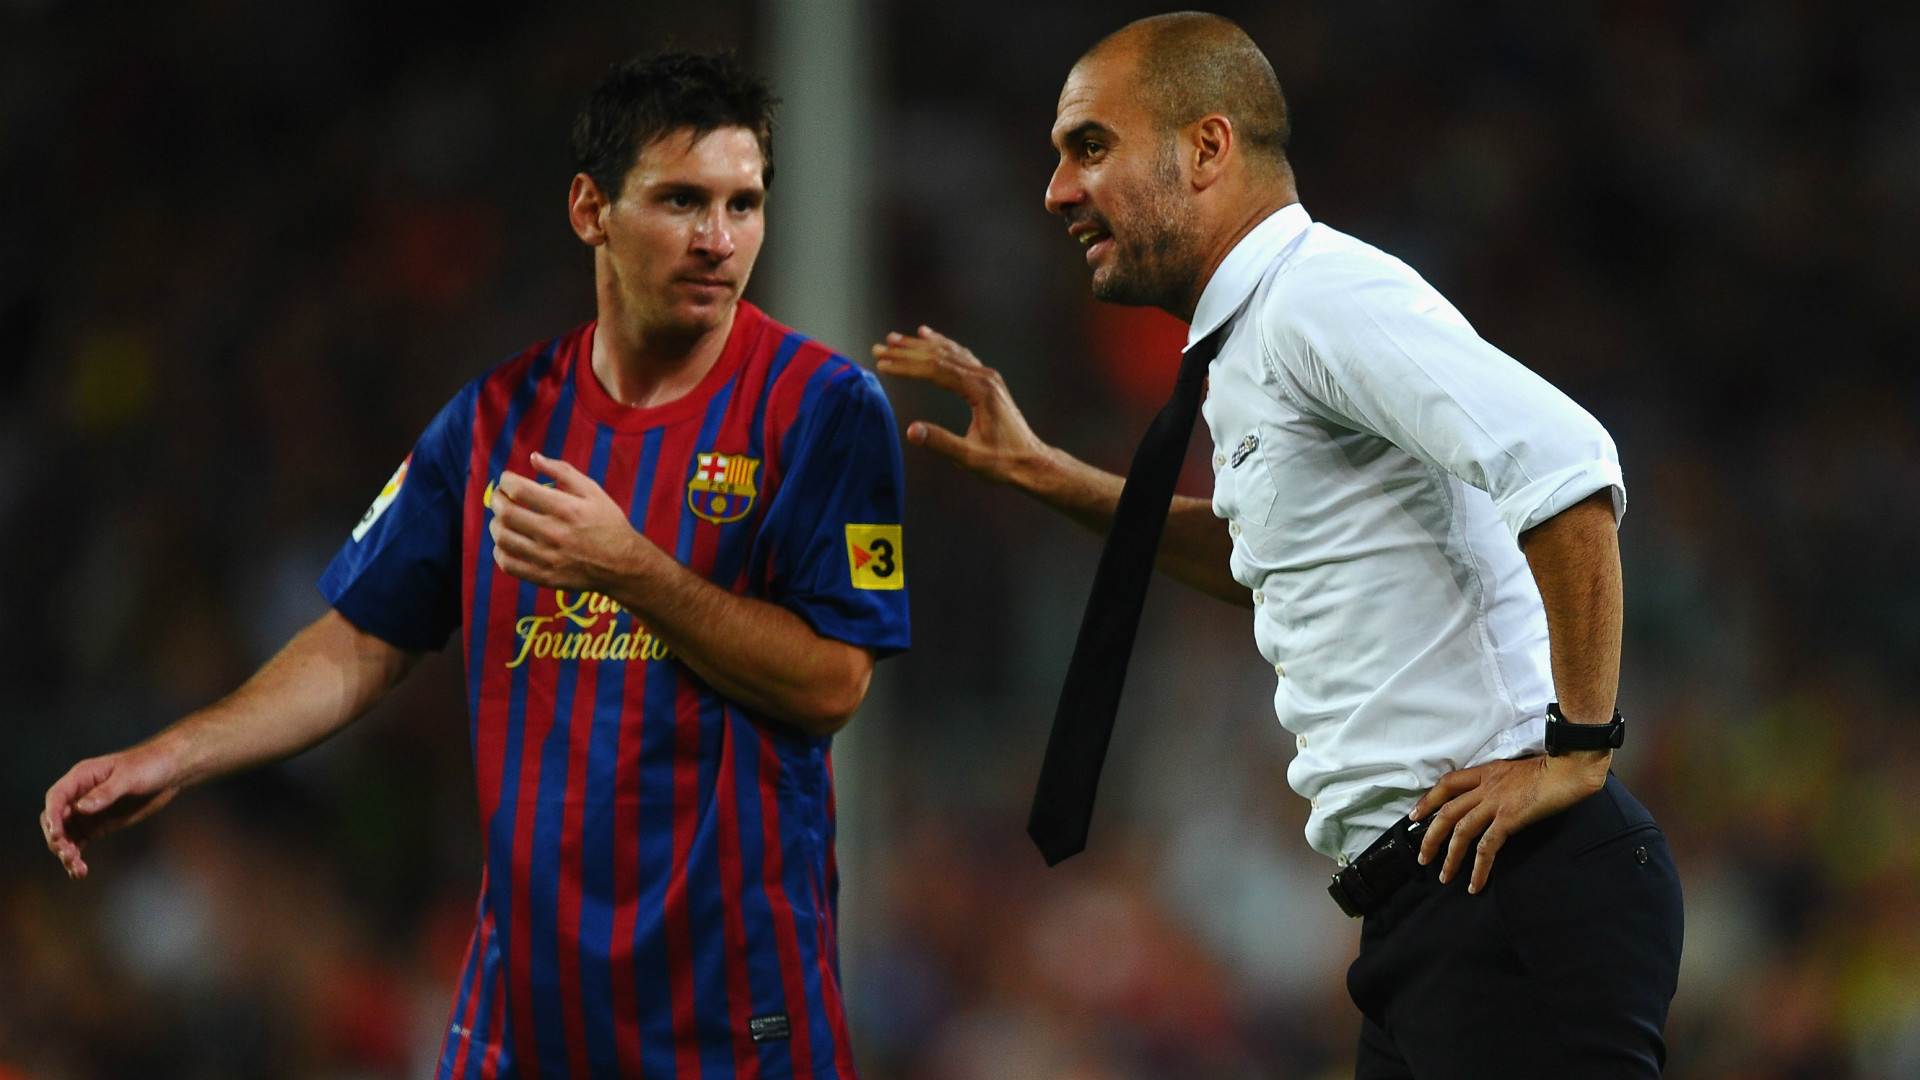 pep-guardiola-on-messi-being-best